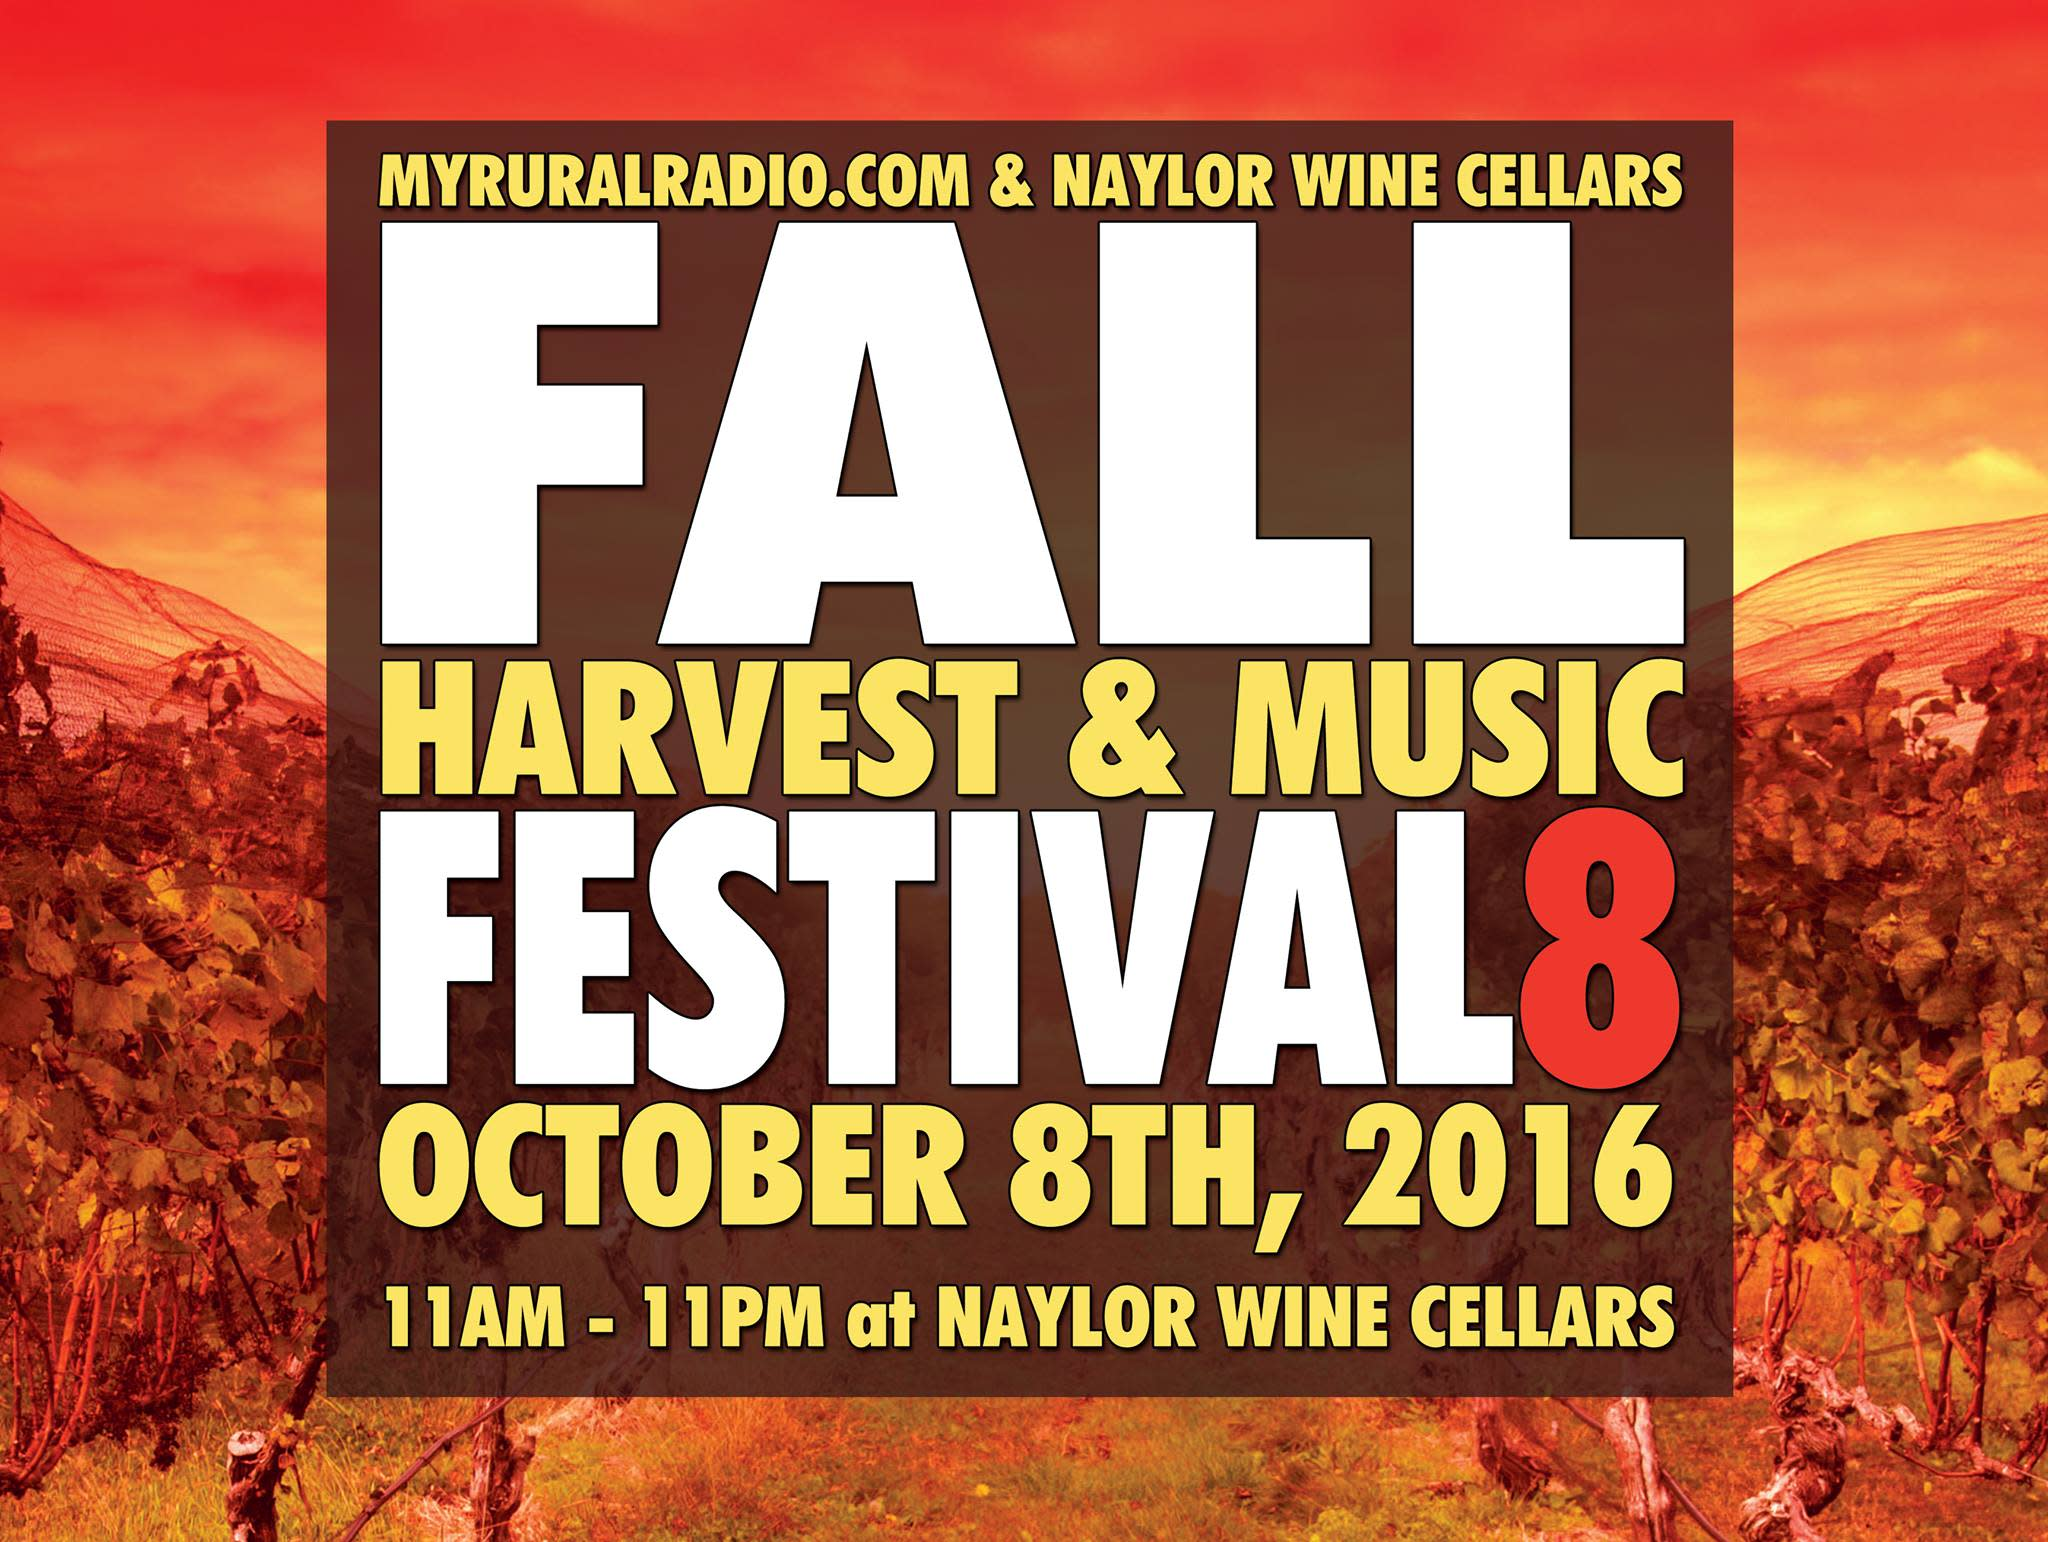 The vineyard is the place to be on a crisp fall day.